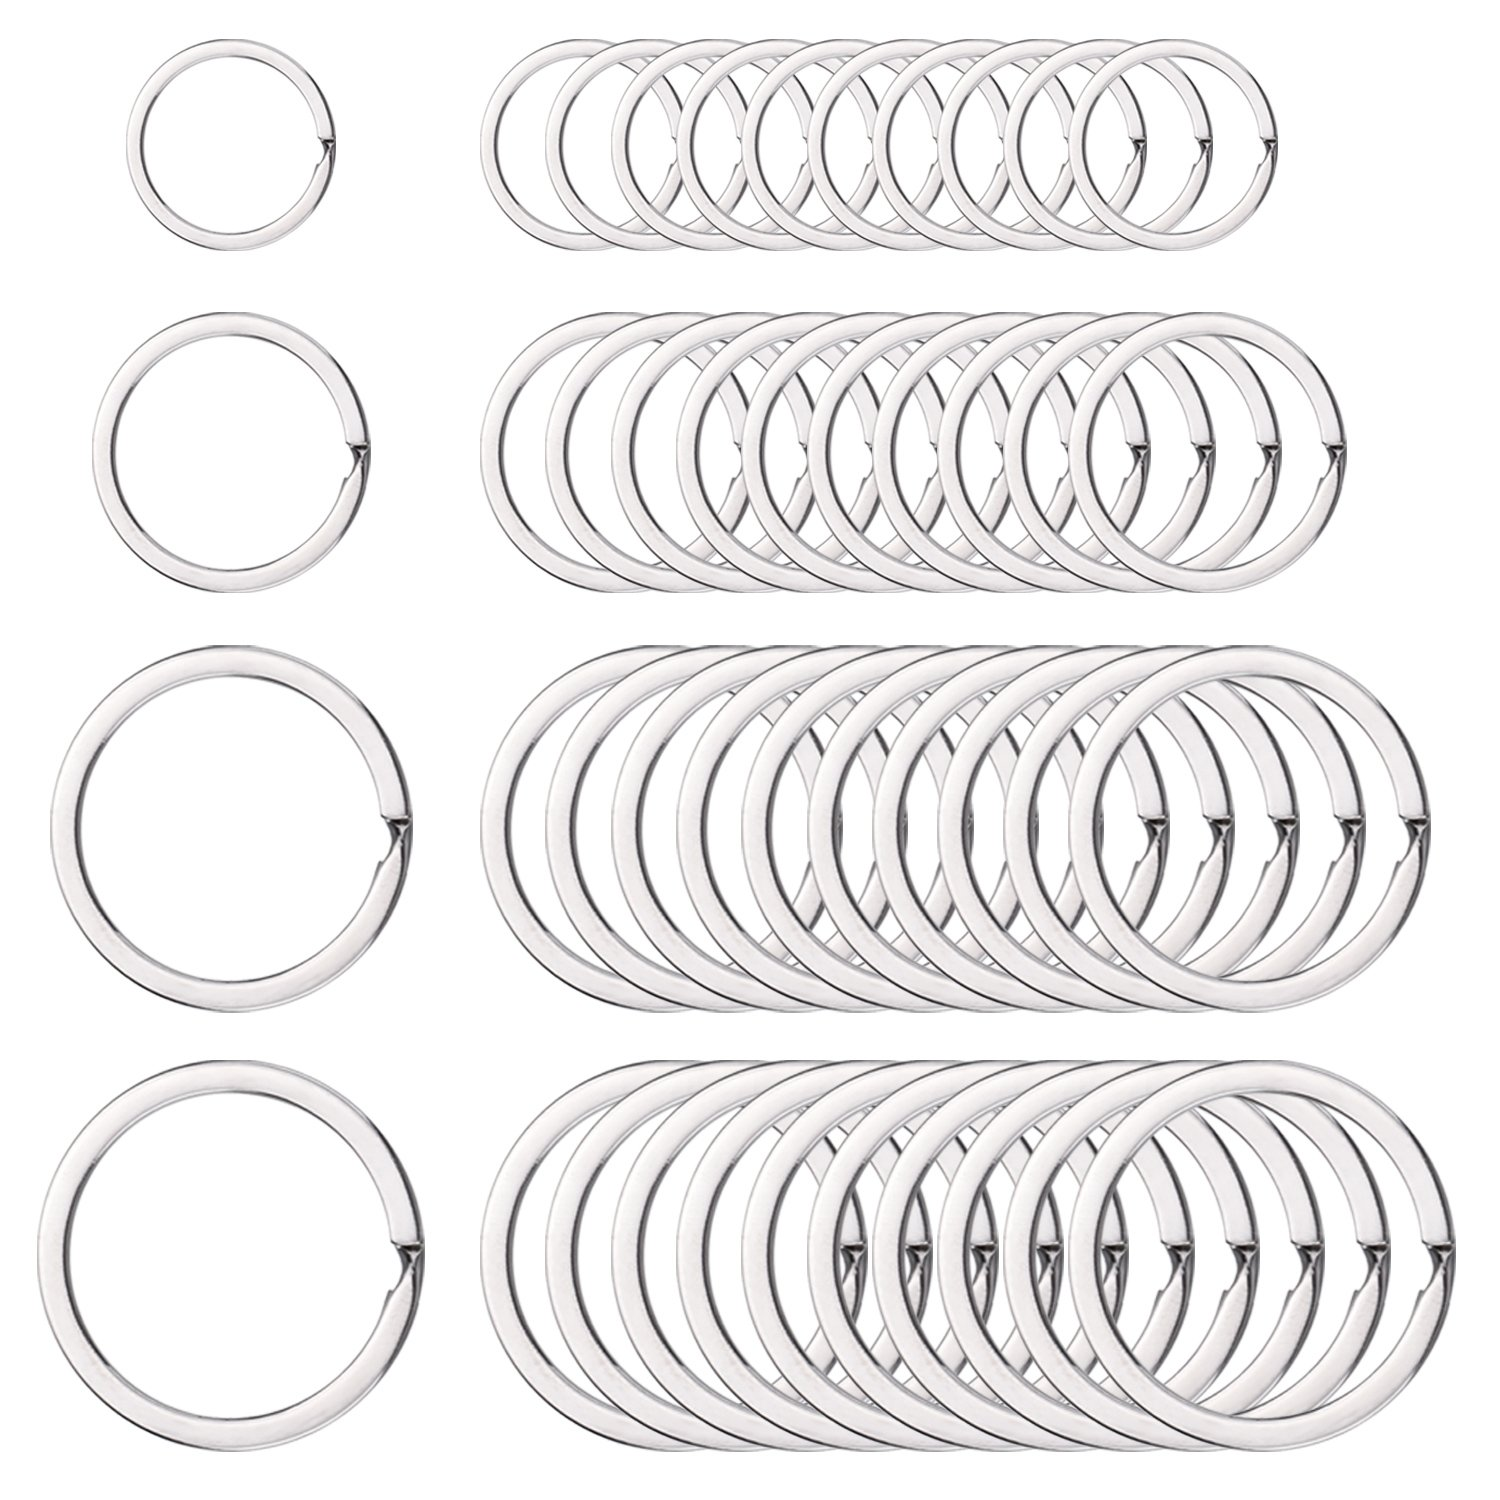 40 Pieces Round Flat Key Chain Rings Metal Split Ring for Home Car Keys Organization, 3/ 4 Inch, 1 Inch, 1.25 Inch and 1.4 Inch, Silver Outus